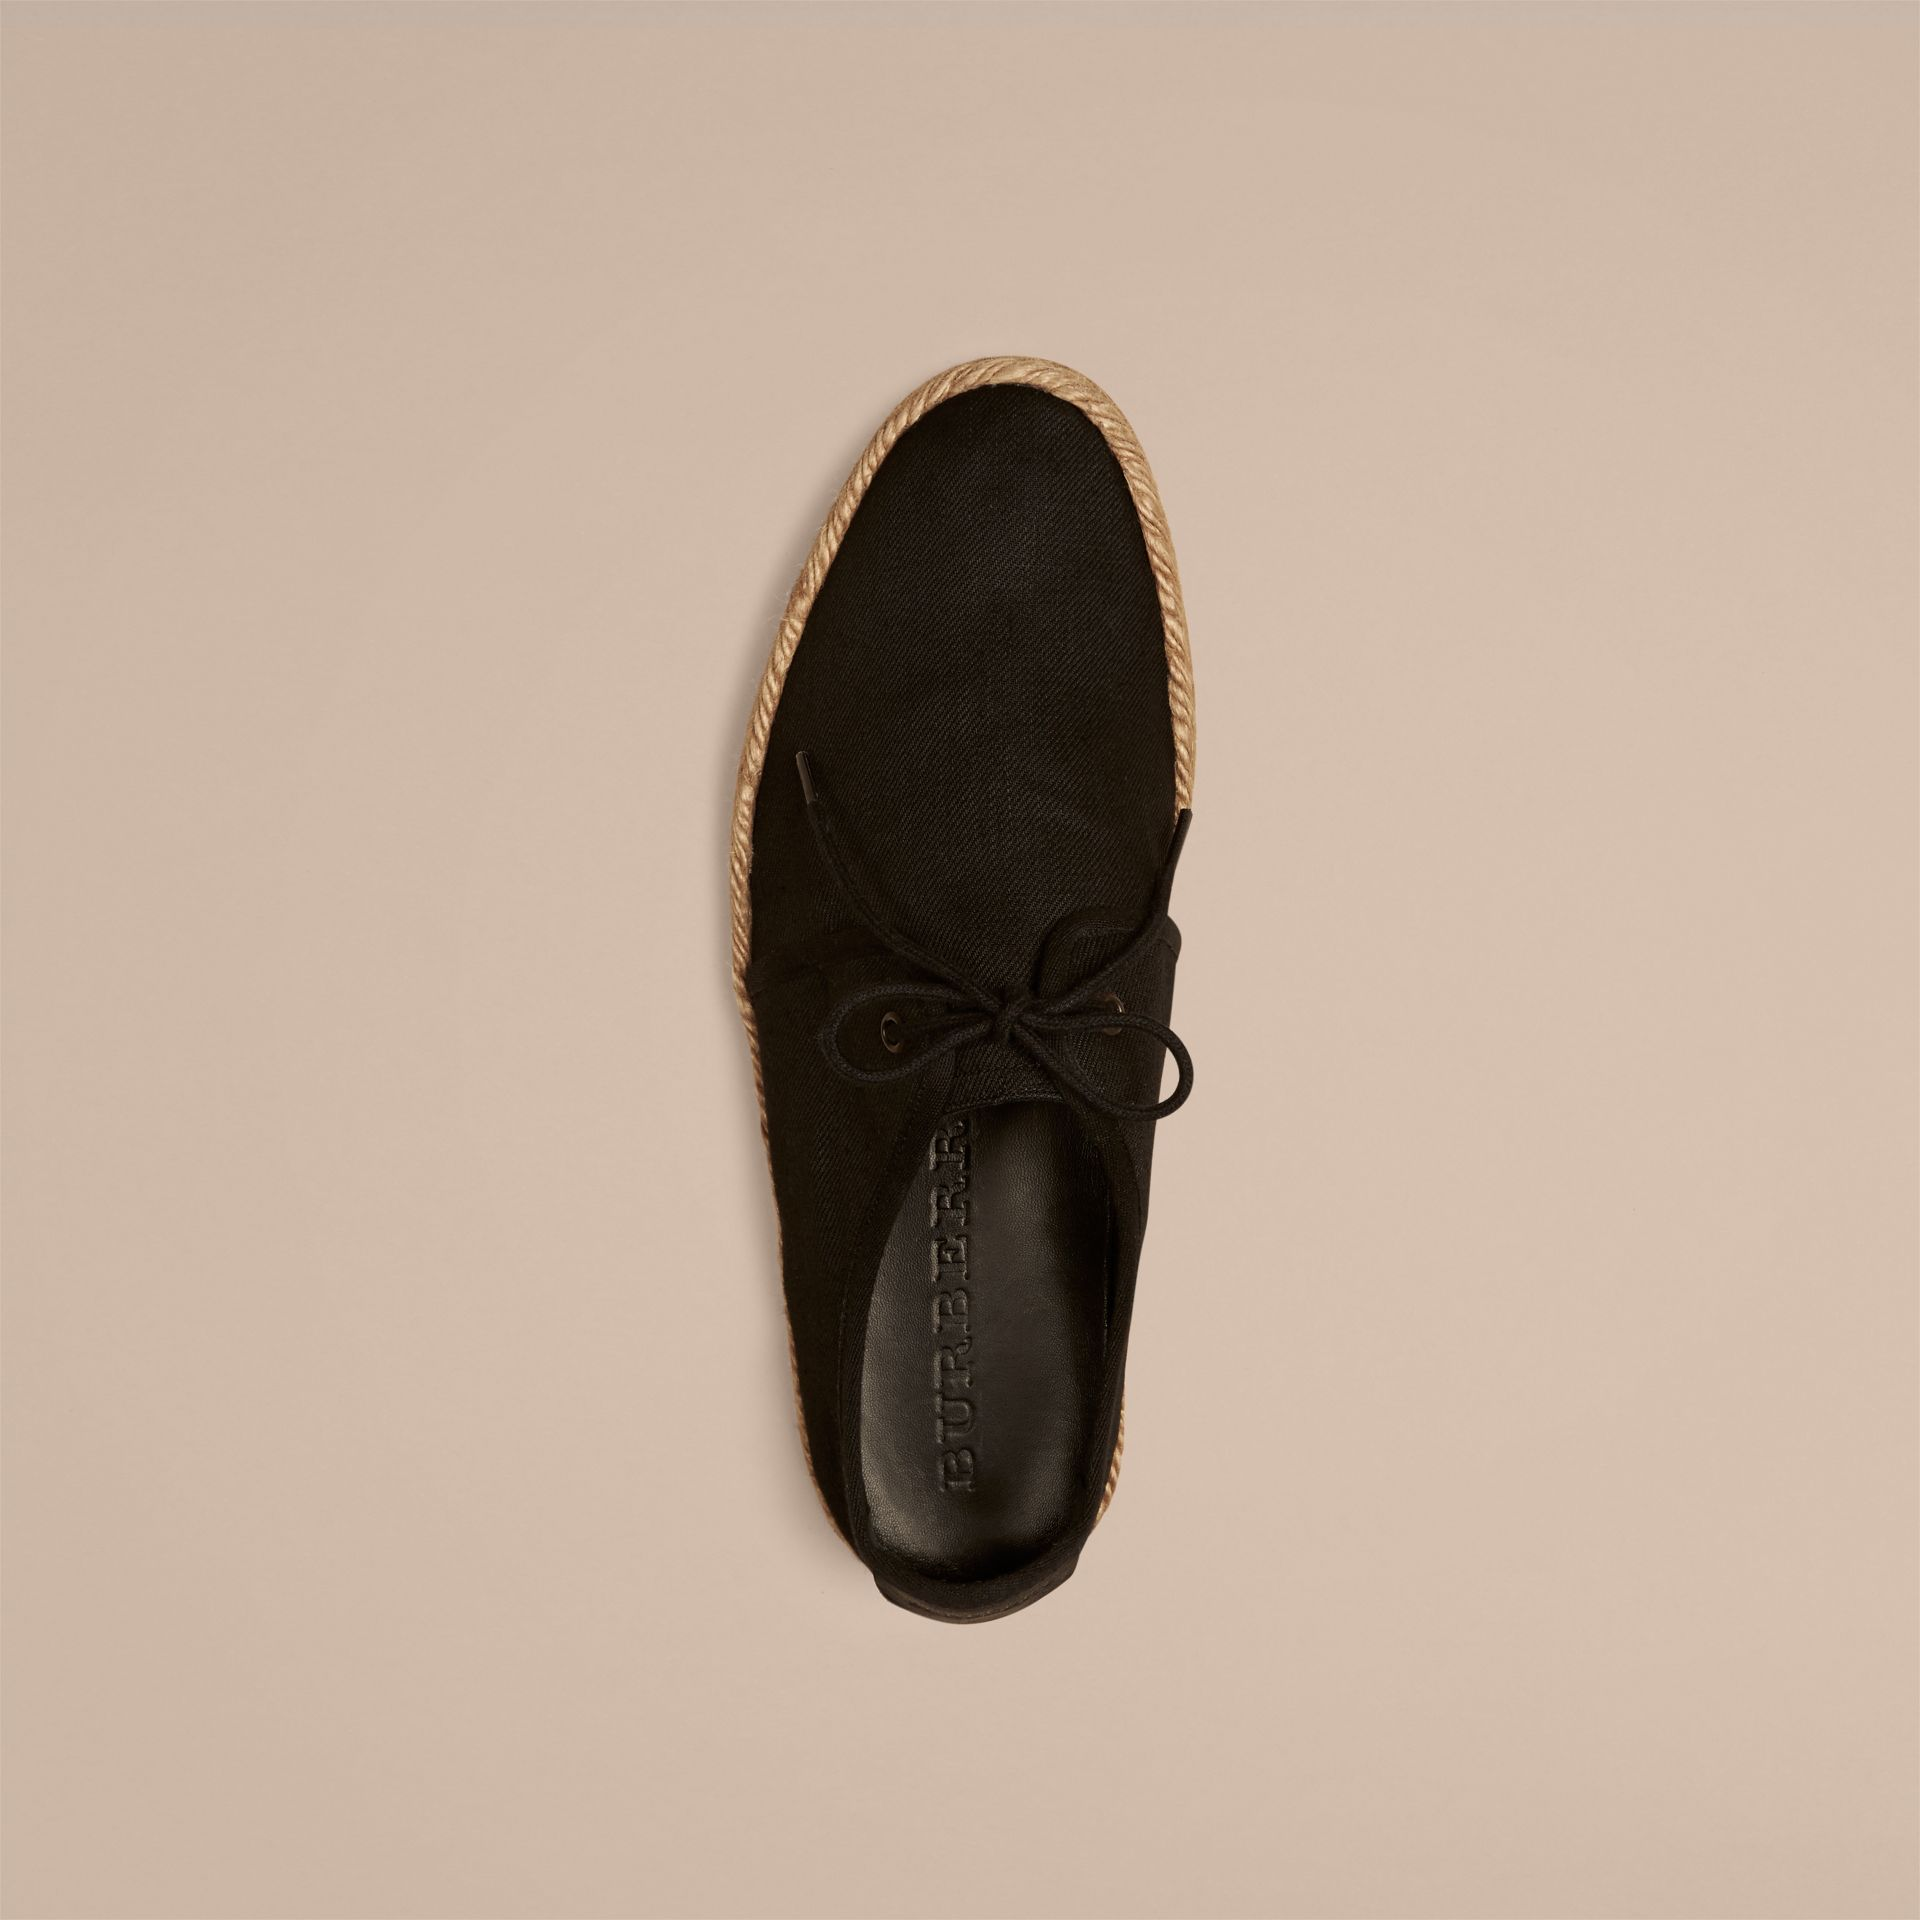 Black Japanese Linen Lace-up Espadrilles Black - gallery image 2